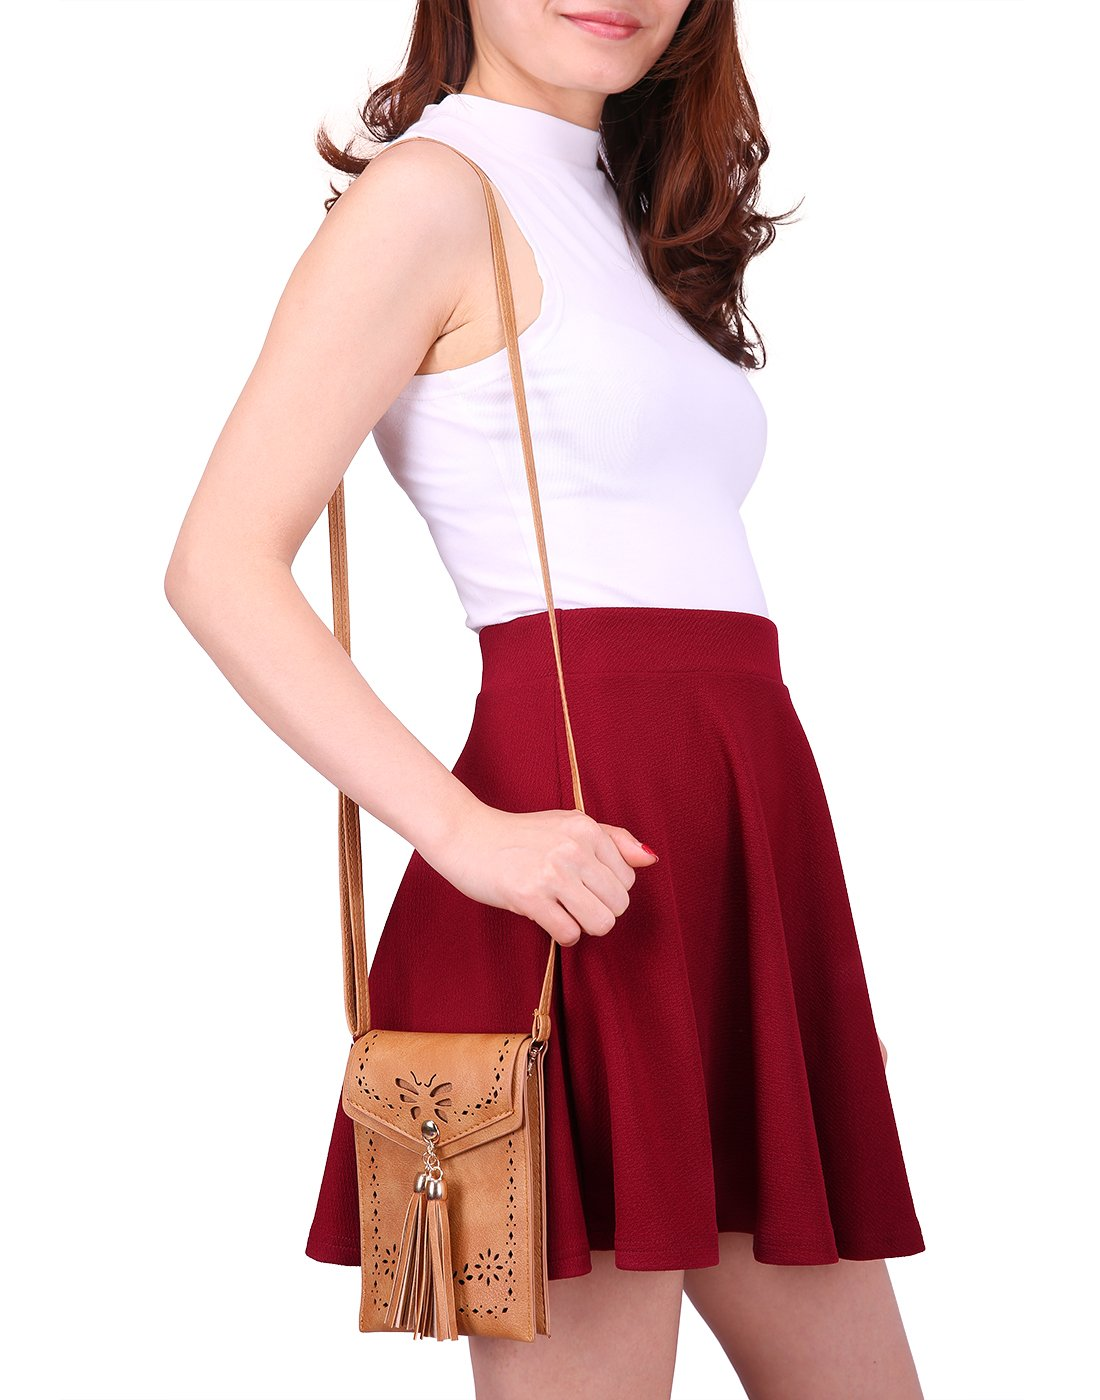 HDE Small Crossbody Pouch Purse Tassel Travel Phone Wallet Vintage Leather Bags (Brown) by HDE (Image #6)